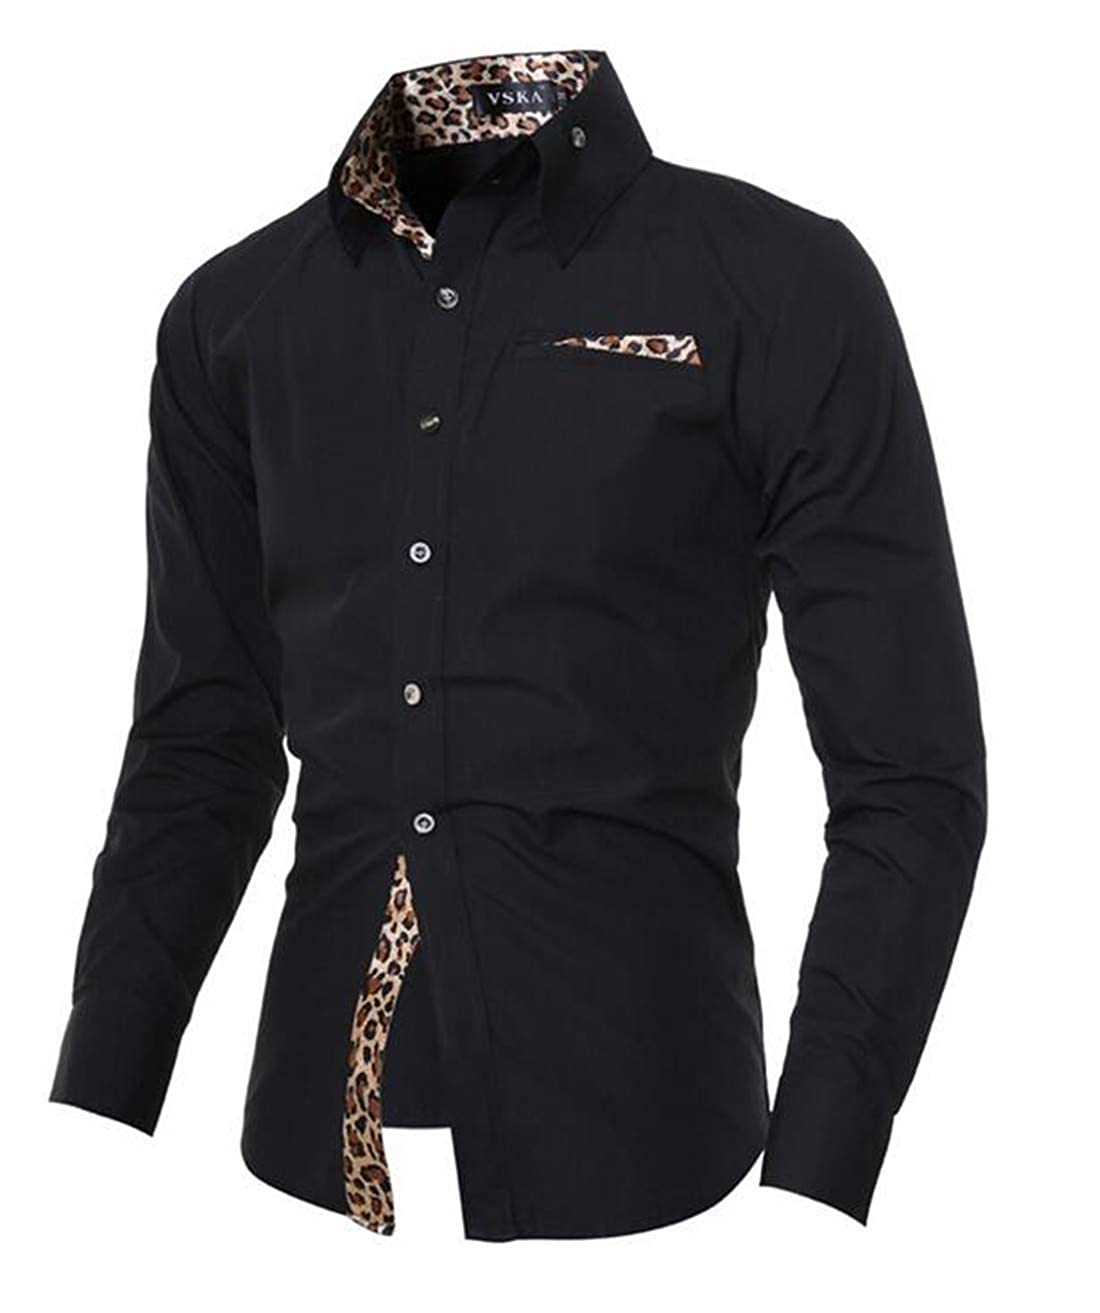 XTX Mens Casual Leopard Stitching Pocket Button Down Top Shirts